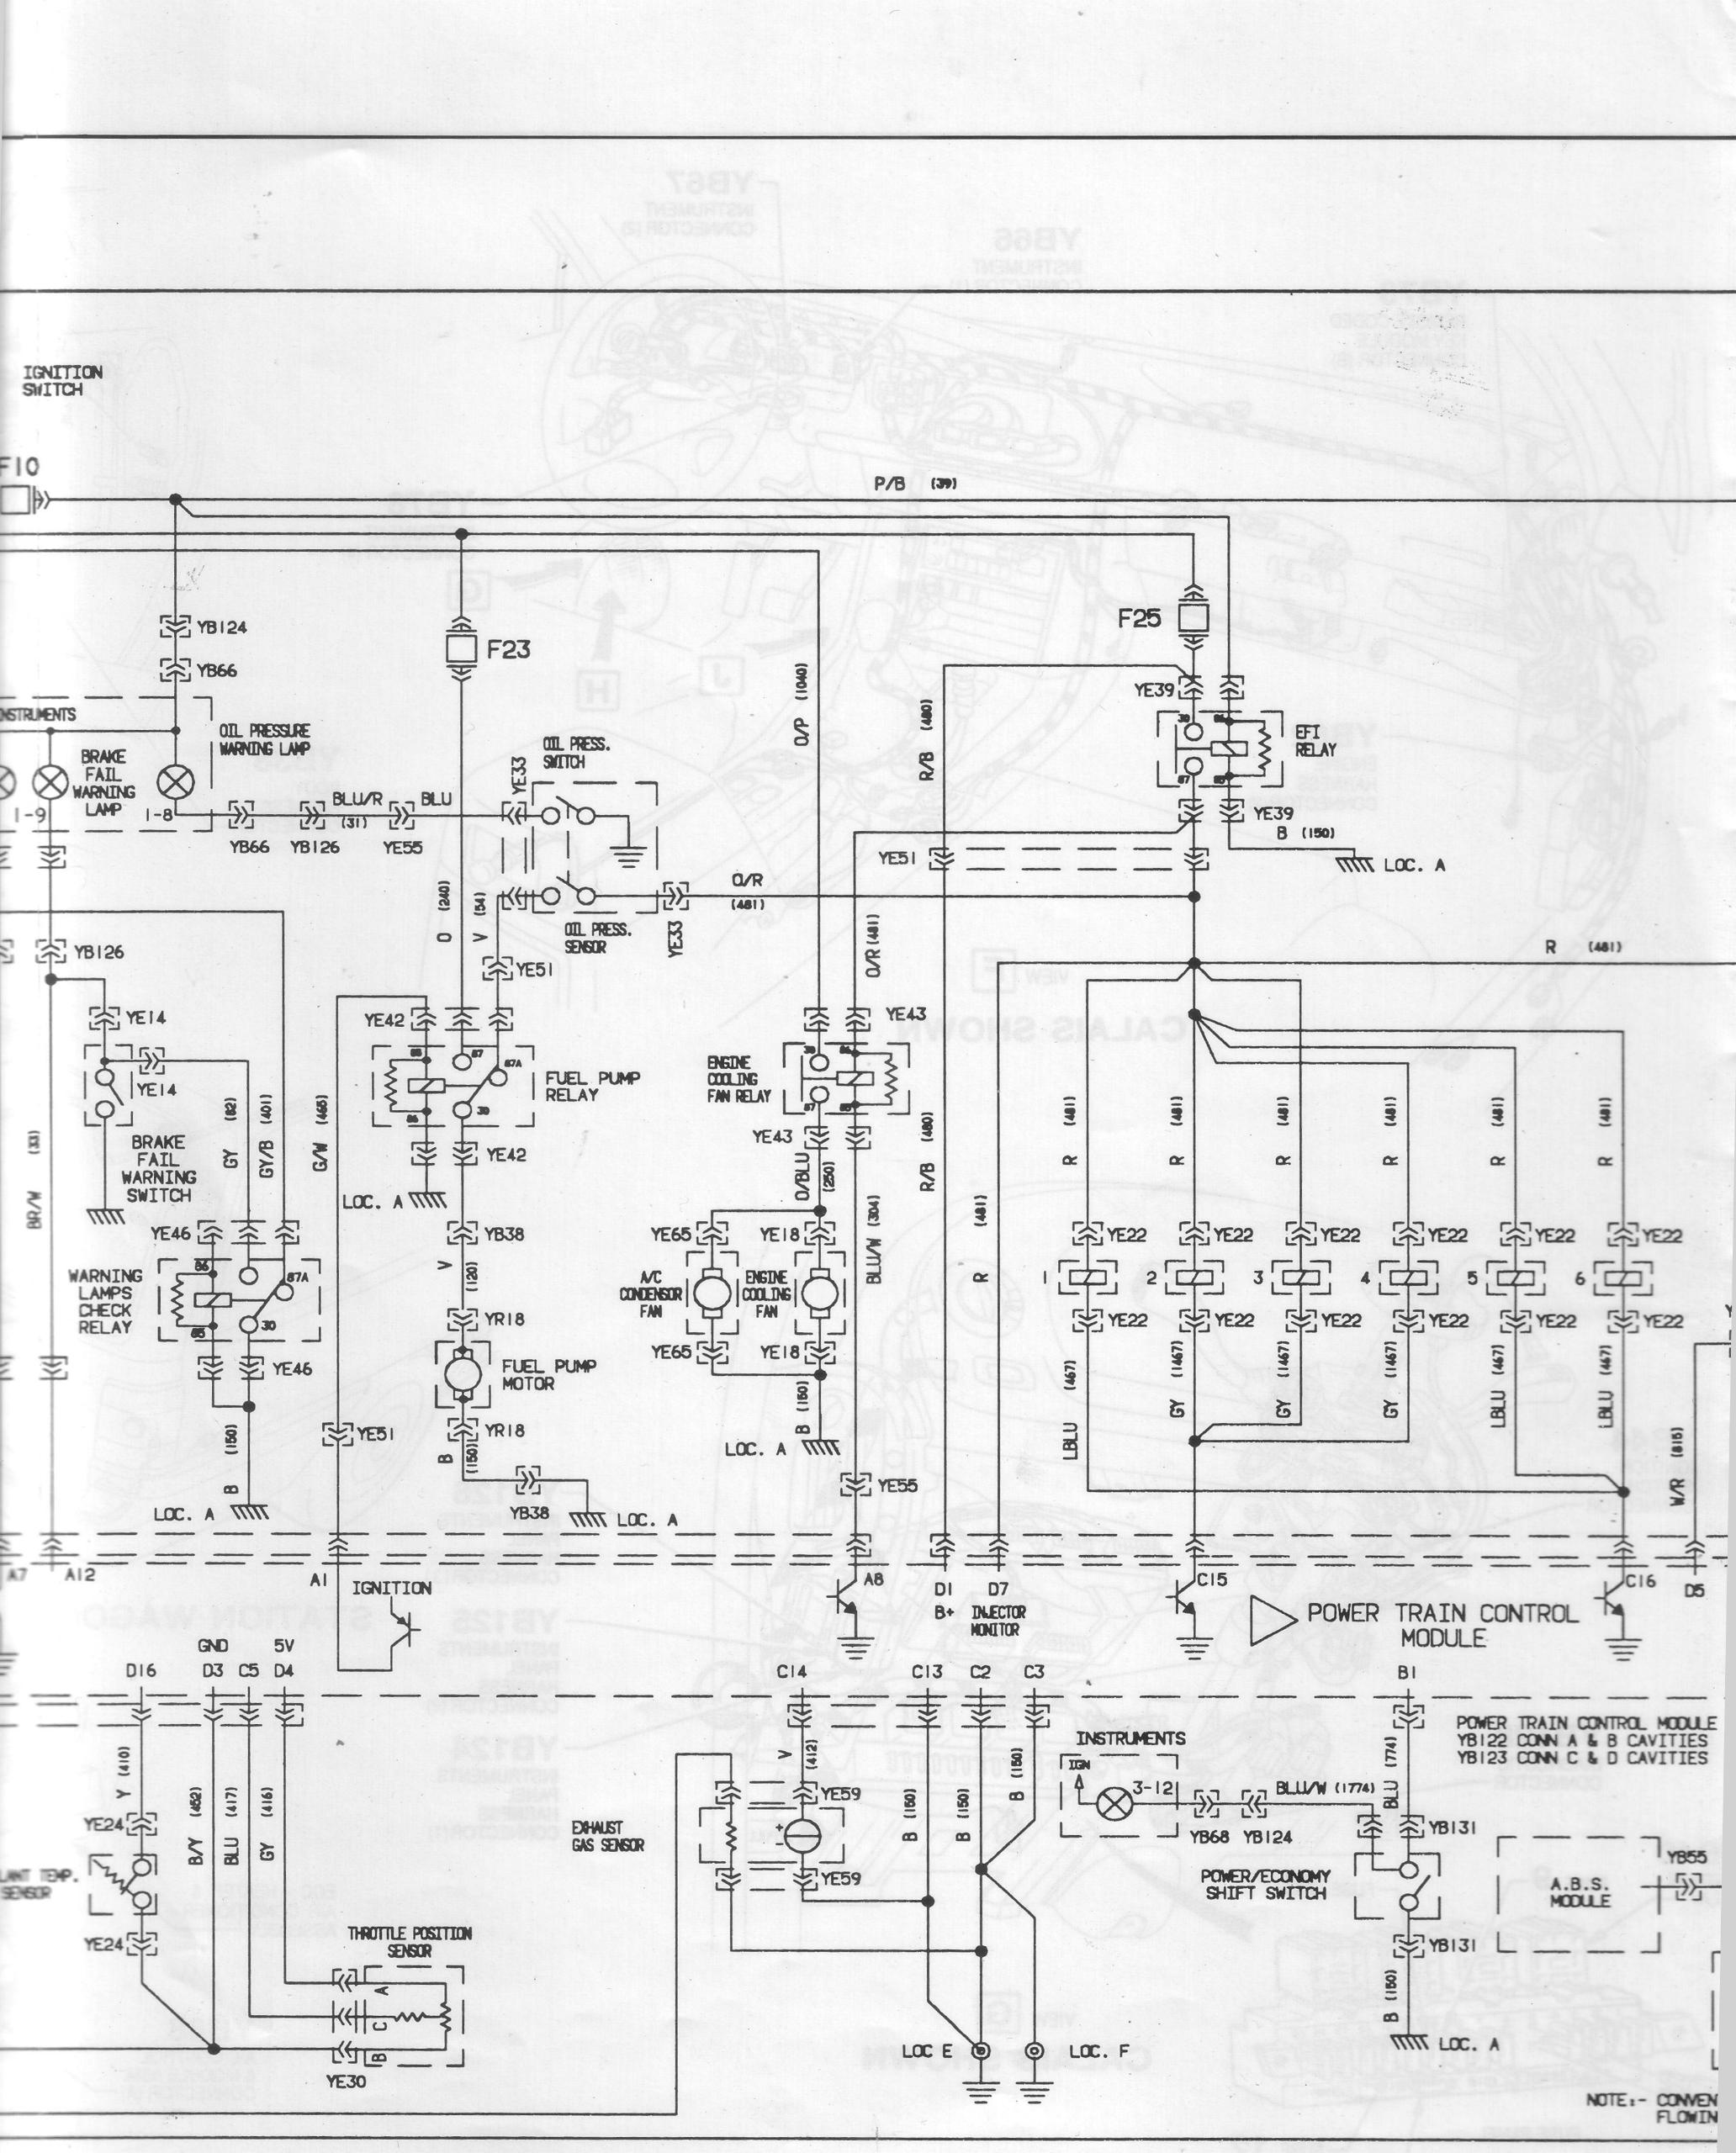 Cool vt modore fuel pump wiring diagram pictures inspiration